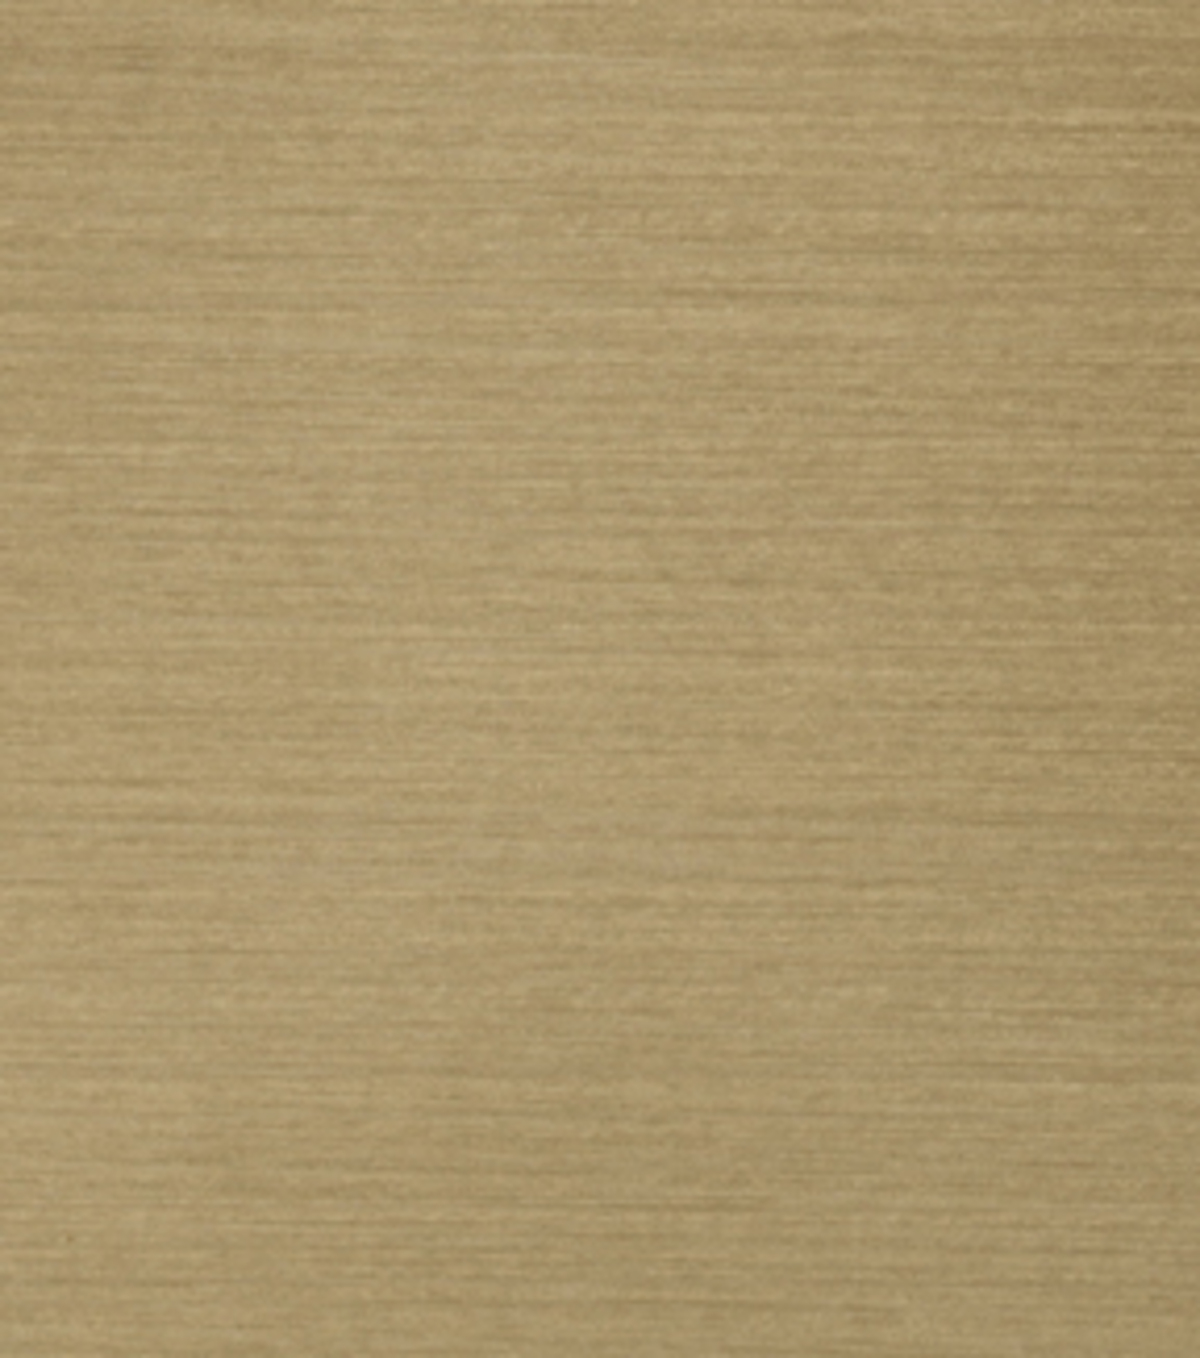 Home Decor 8\u0022x8\u0022 Fabric Swatch--Signature Series Shelburne-Gold Leaf